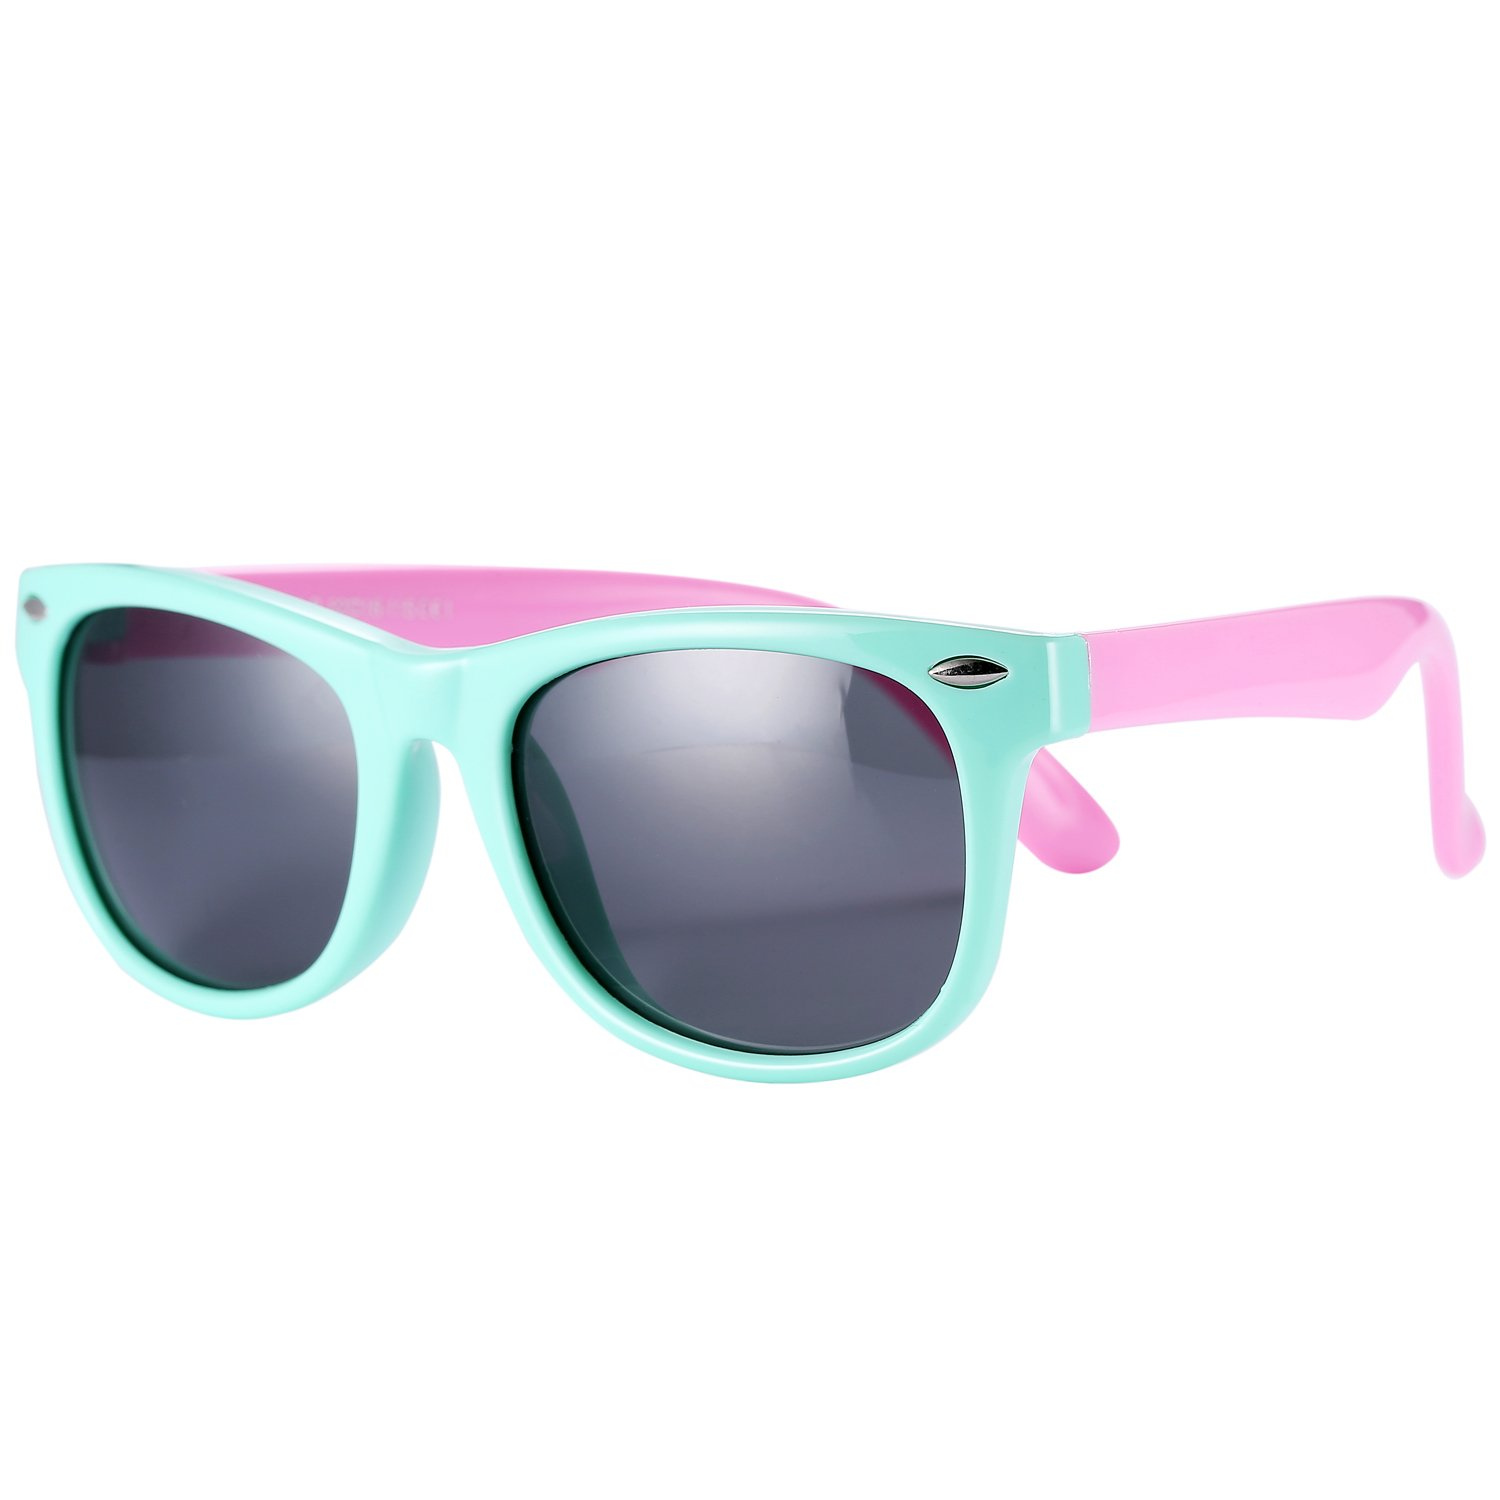 Pro Acme Tpee Rubber Flexible Kids Polarized Sunglasses For Baby And Children Age 3-10 Small Mint Green